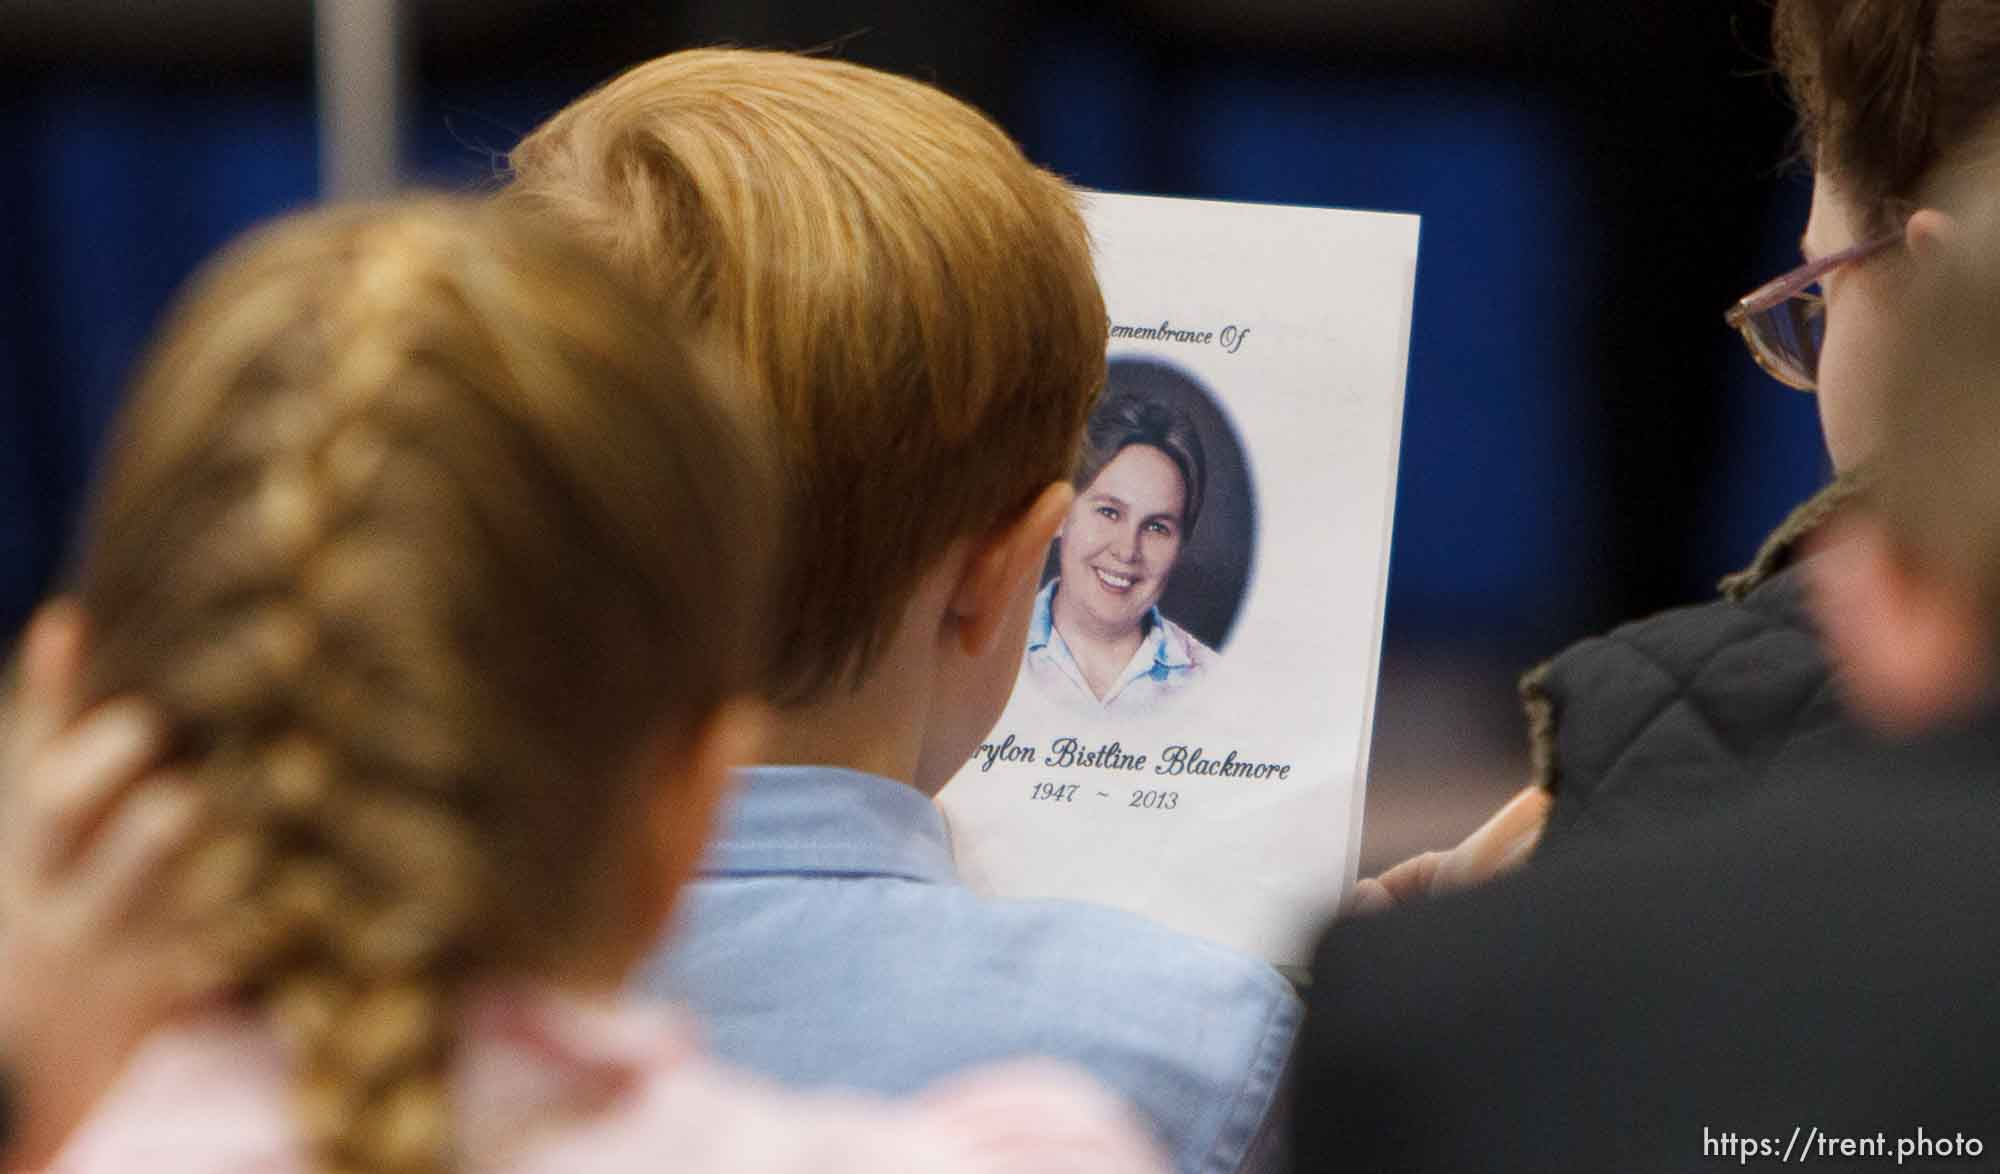 Trent Nelson | The Salt Lake Tribune Funeral program for Carolyn Bistline Blackmore, during a church service of ex-FLDS members Sunday, February 17, 2013 in Hildale.